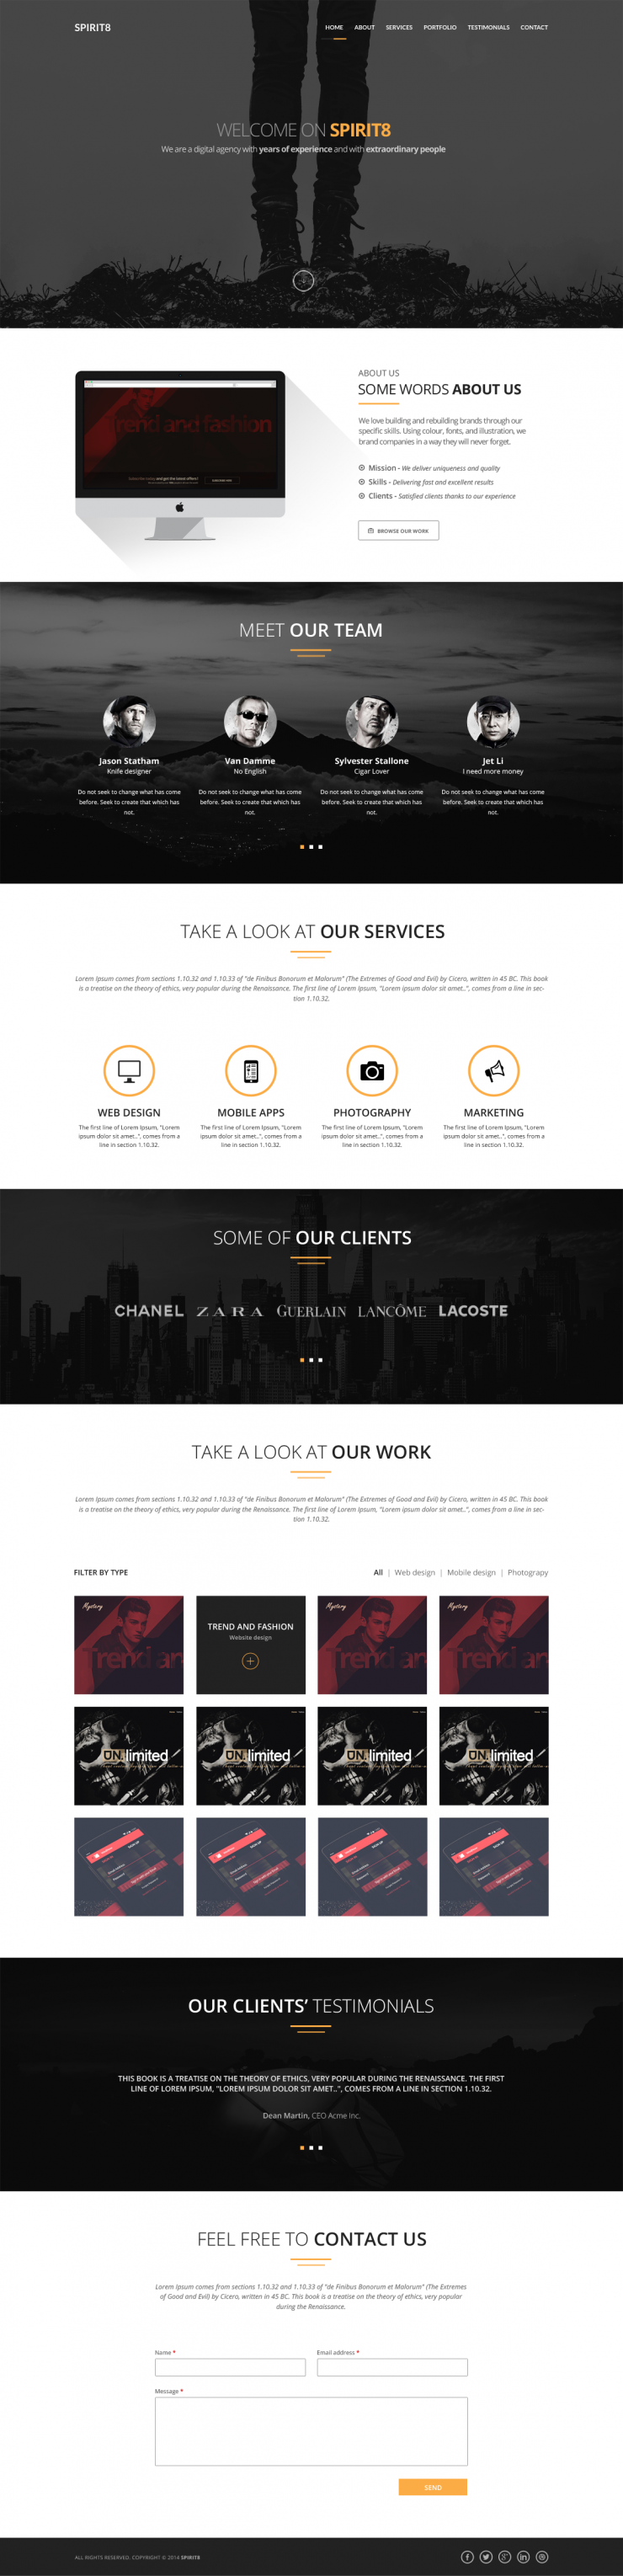 Digital Agency One Page Template PSD www, White, Website Template, Website Layout, Website, webpage, Web Template, Web Resources, web page, Web Layout, Web Interface, Web Elements, Web Design, Web, User Interface, UI, Template, Single Page, Simple, Scroll, Resources, Psd Templates, Portfolio, Personal, one page, Fresh, flat style, Flat, Elements, Digital, Corporate, company, Clean, agancy,